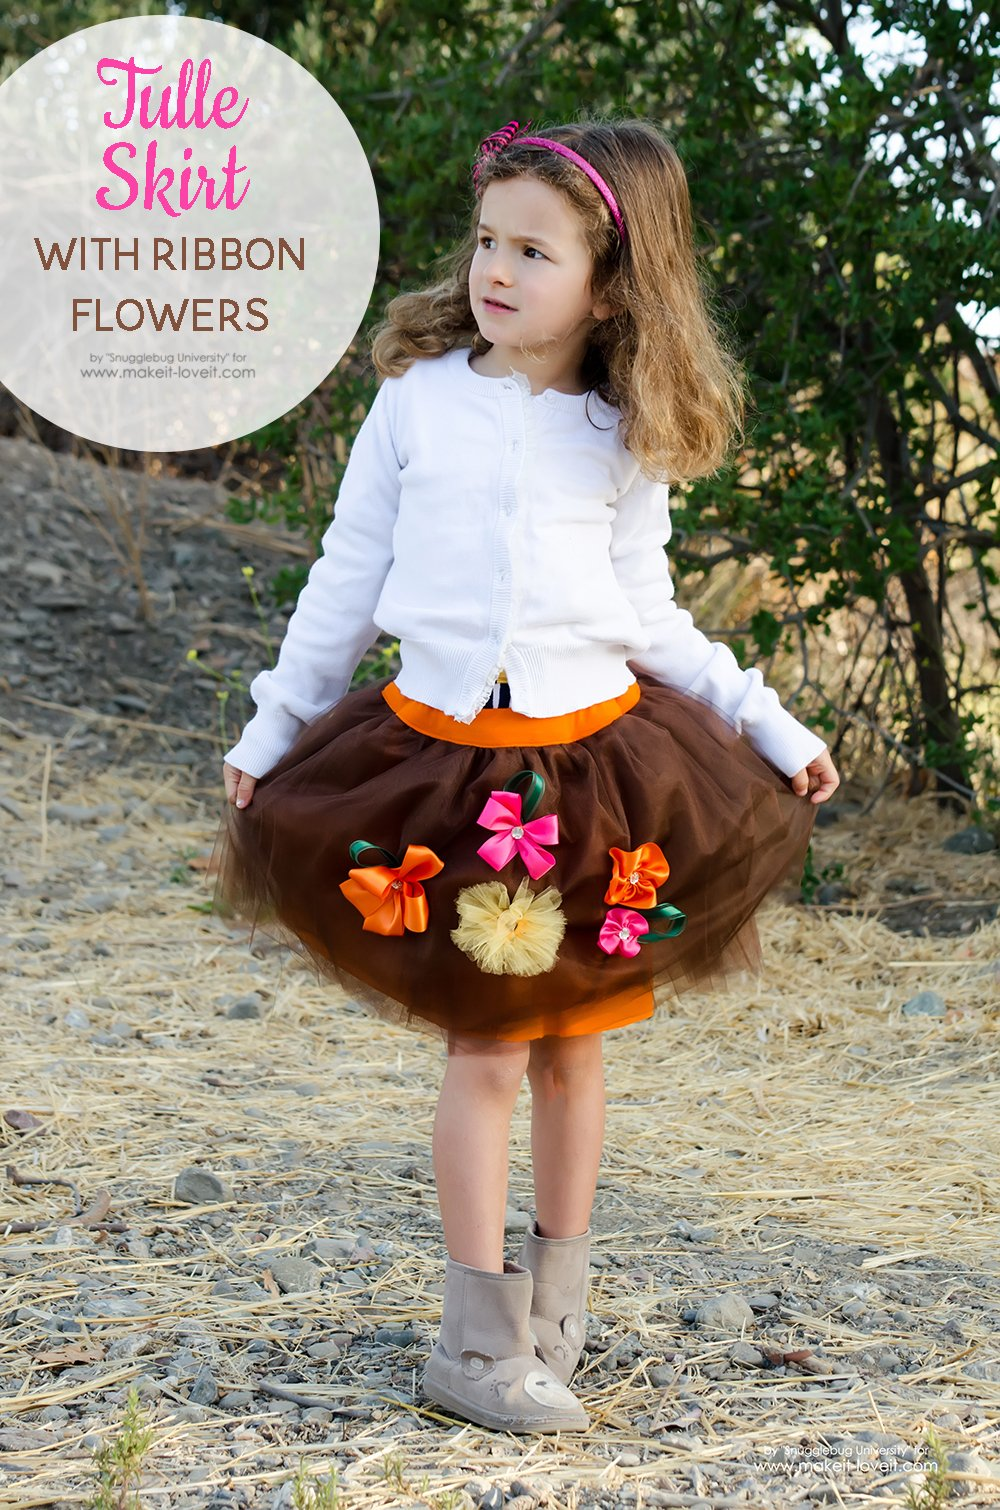 af9b161a277b Tulle Skirt with Ribbon Flowers – Make It and Love It